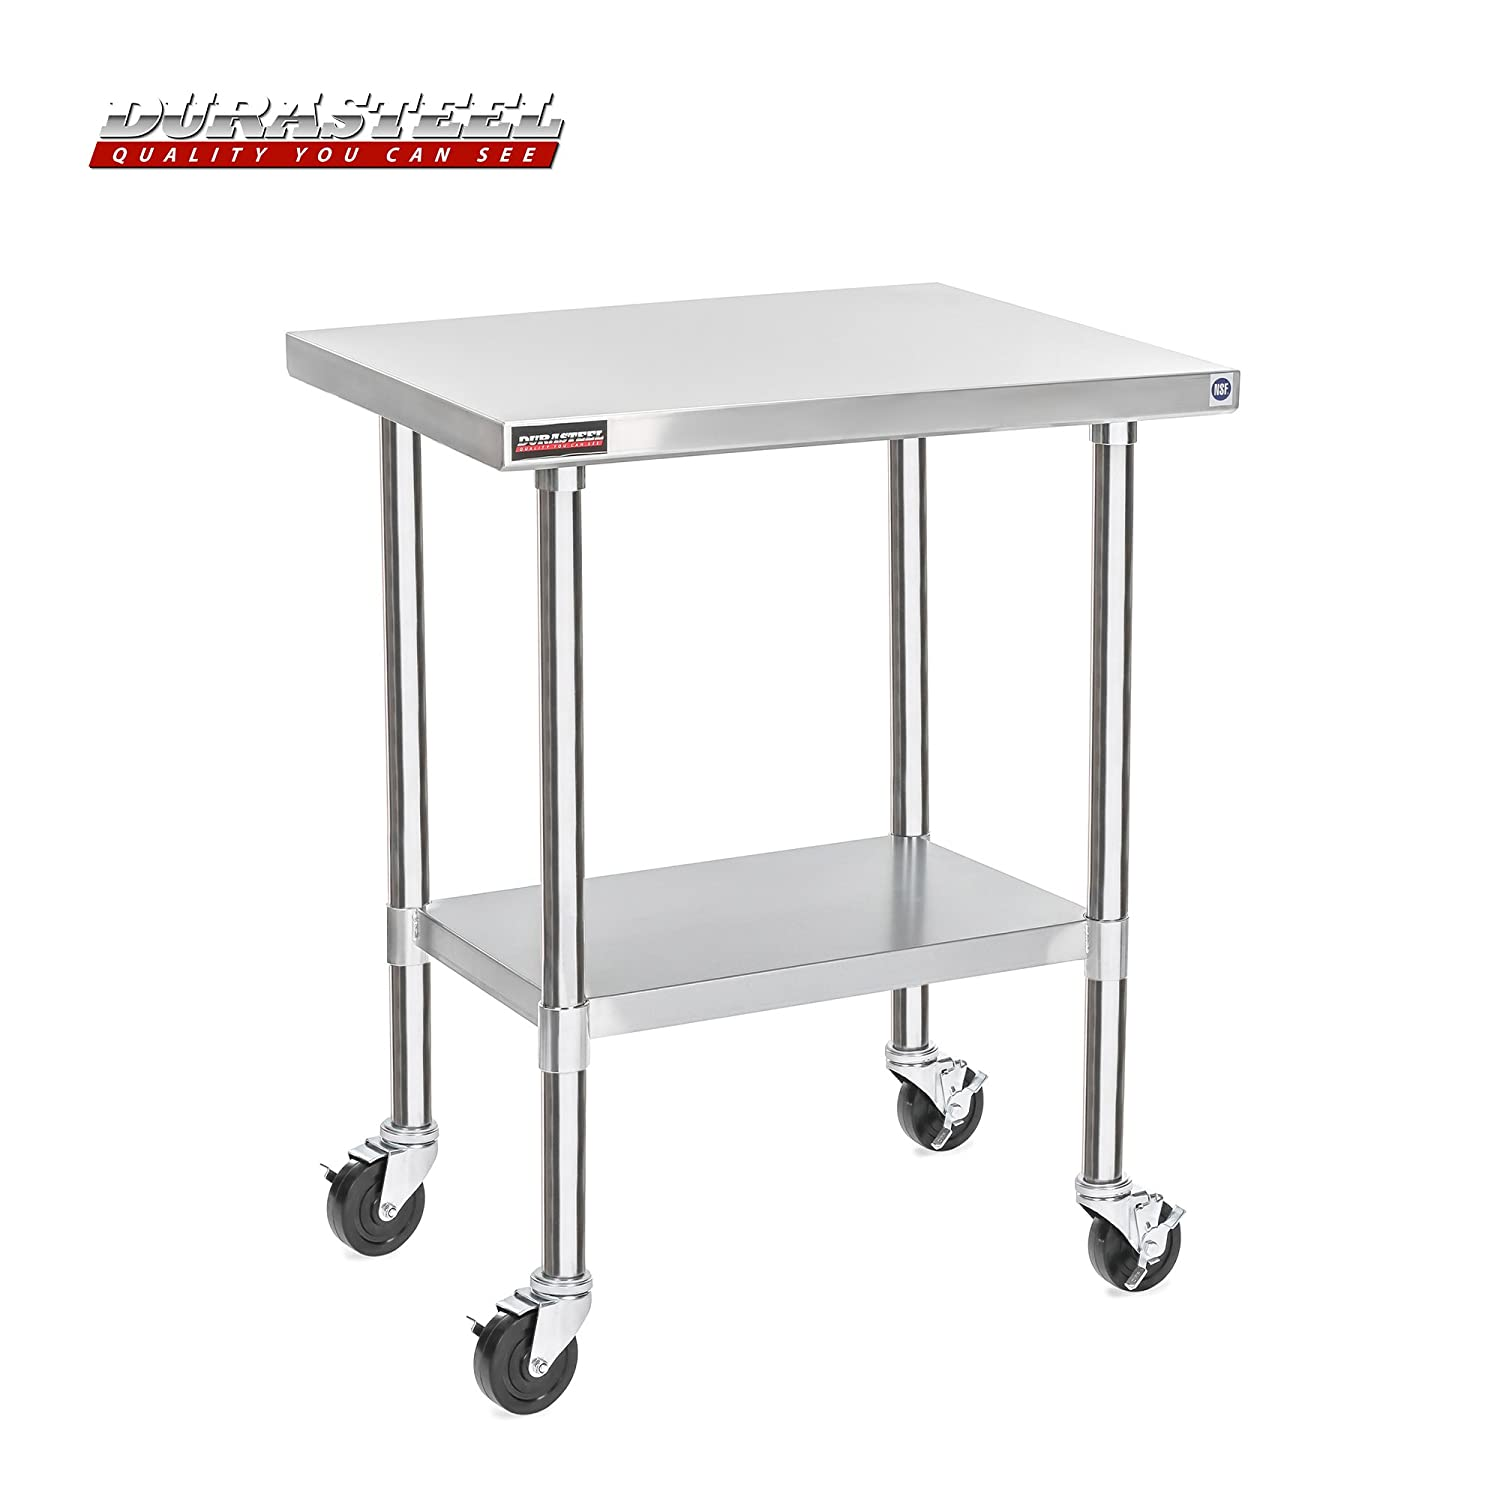 "DuraSteel Stainless Steel Work Table 24"" x 30"" x 34"" Height w/ 4 Caster Wheels -Food Prep Commercial Grade Worktable - NSF Certified - Good For Restaurant, Business, Warehouse, Home, Kitchen, Garage"